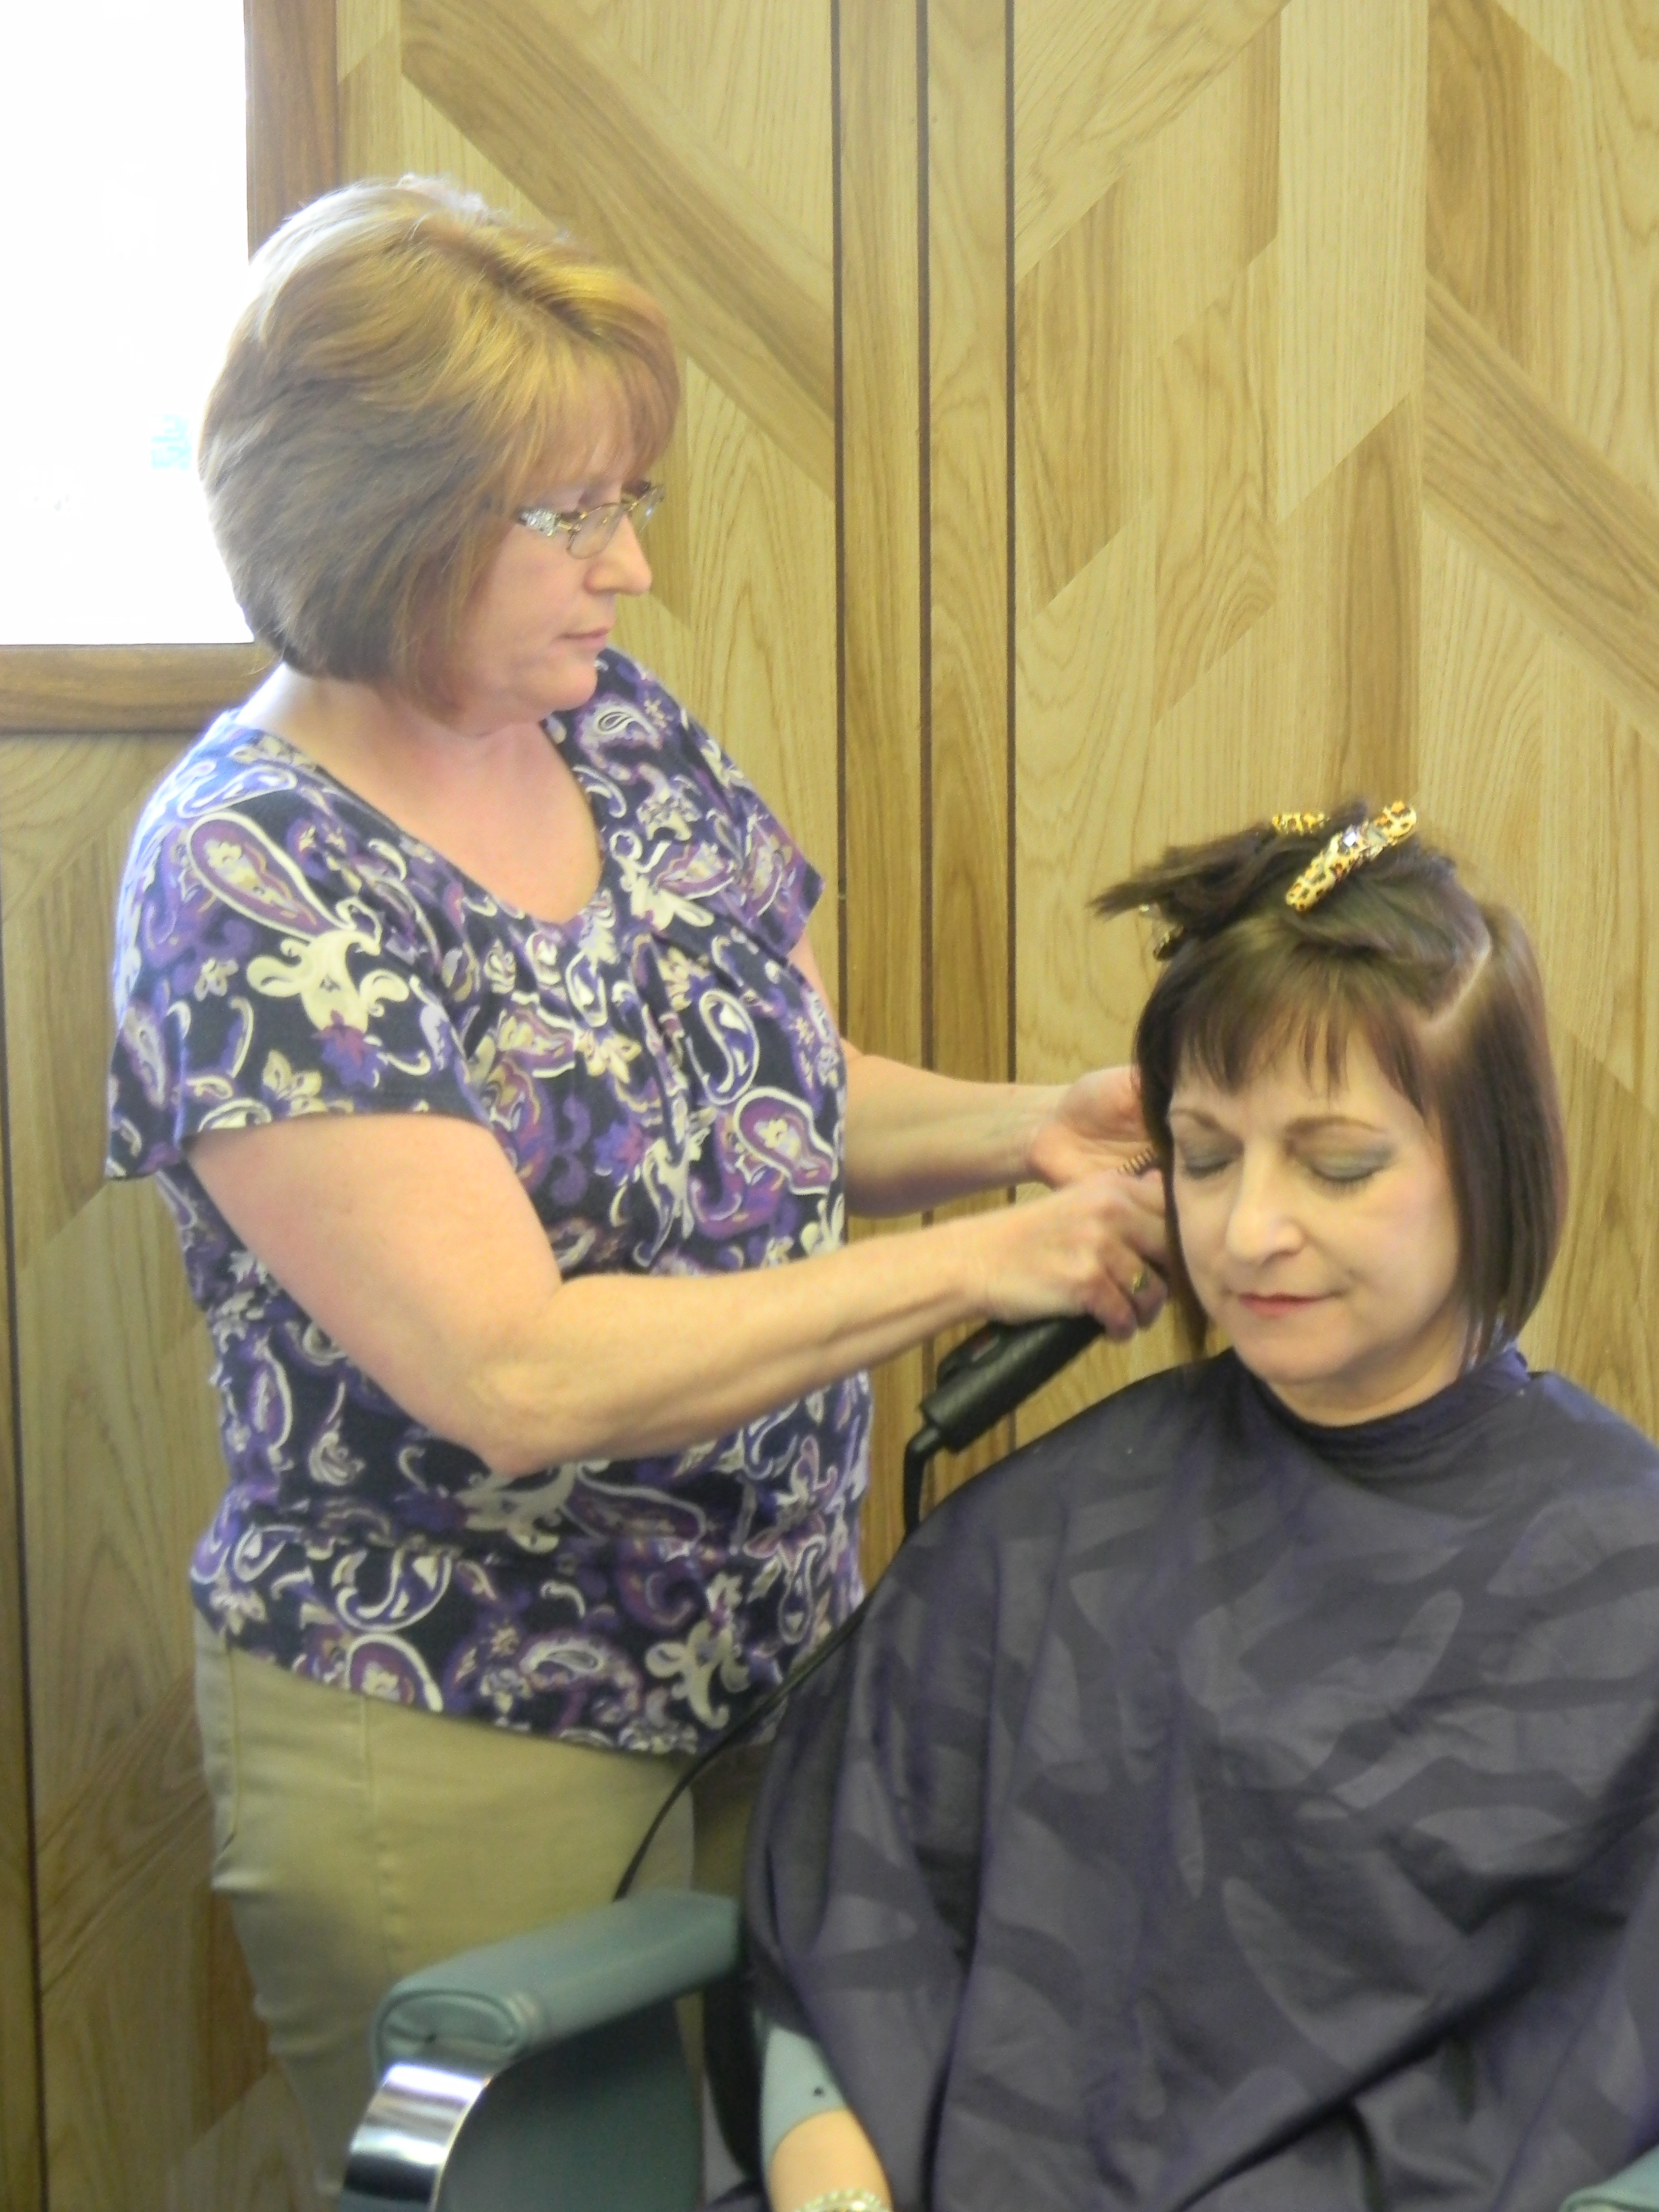 Salon Cut In Hair Salon In Mount Vernon Ohio For Cut And Style